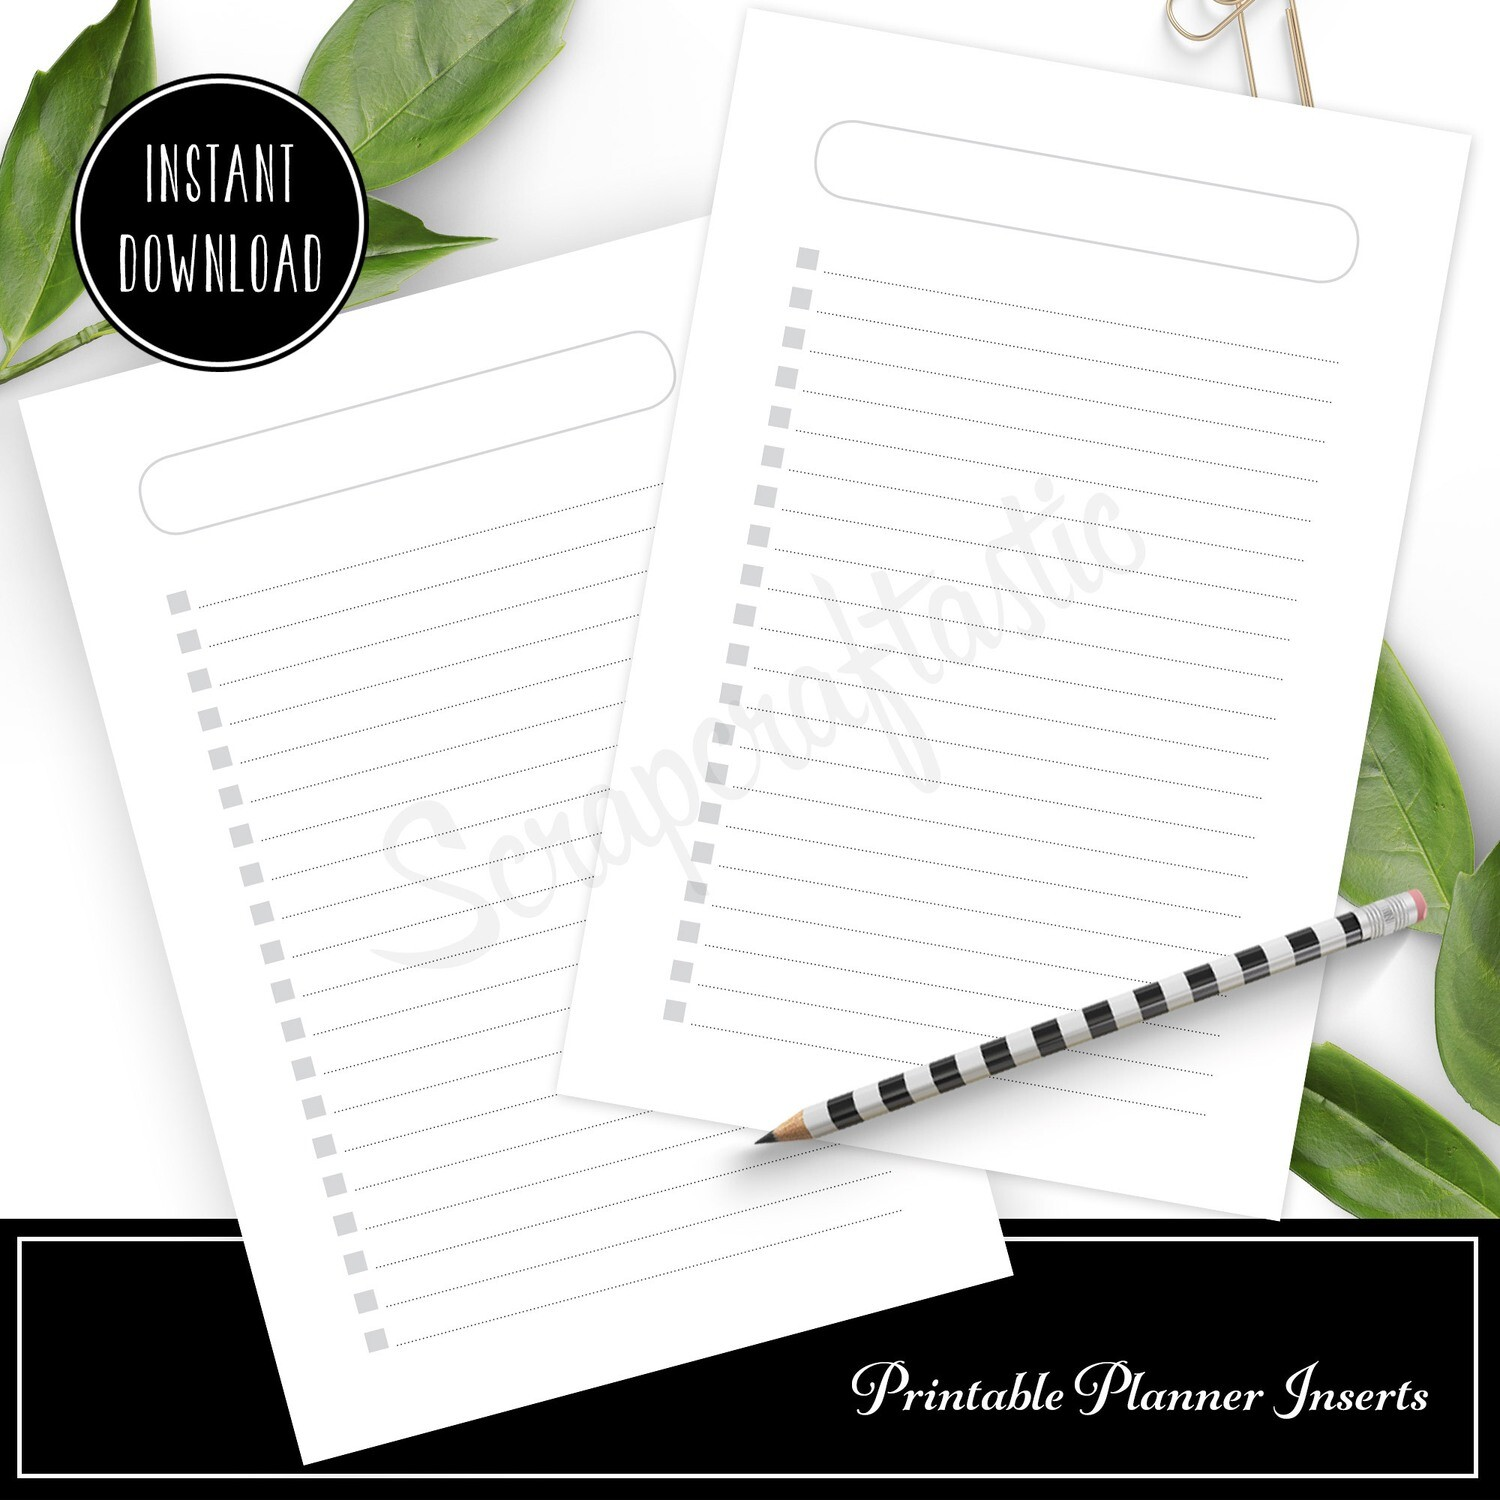 PERSONAL RINGS or TN - Checklist Printable Planner Inserts